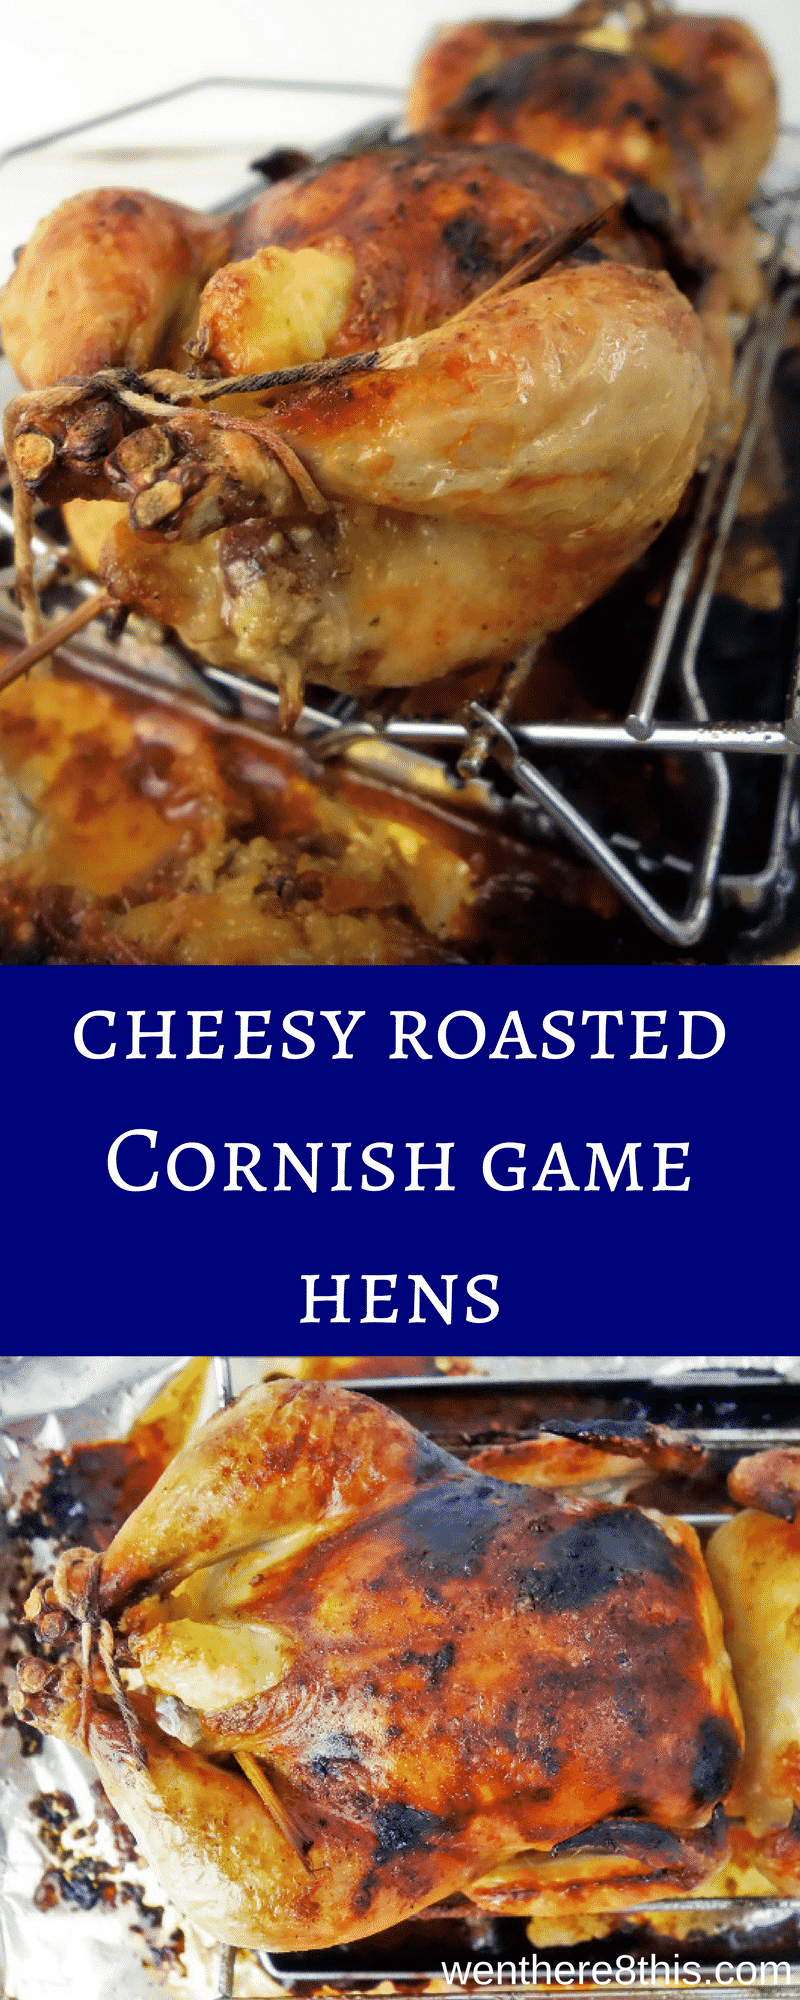 These easy to make Cheesy Roasted Cornish Game Hens are stuffed with cheesy Rice-A-Roni stuffing and roasted until crisp and juicy.Roasted Cornish game hen recipe | cheesy Cornish hens | easy roasted game hens | the best roasted Cornish game hens | easy roasted Cornish hens | Cornish game hen recipes | juicy Cornish game hens | cheesy roasted game hen recipe | easy Cornish game hen recipes | dinner party recipes | fun dinner party ideas